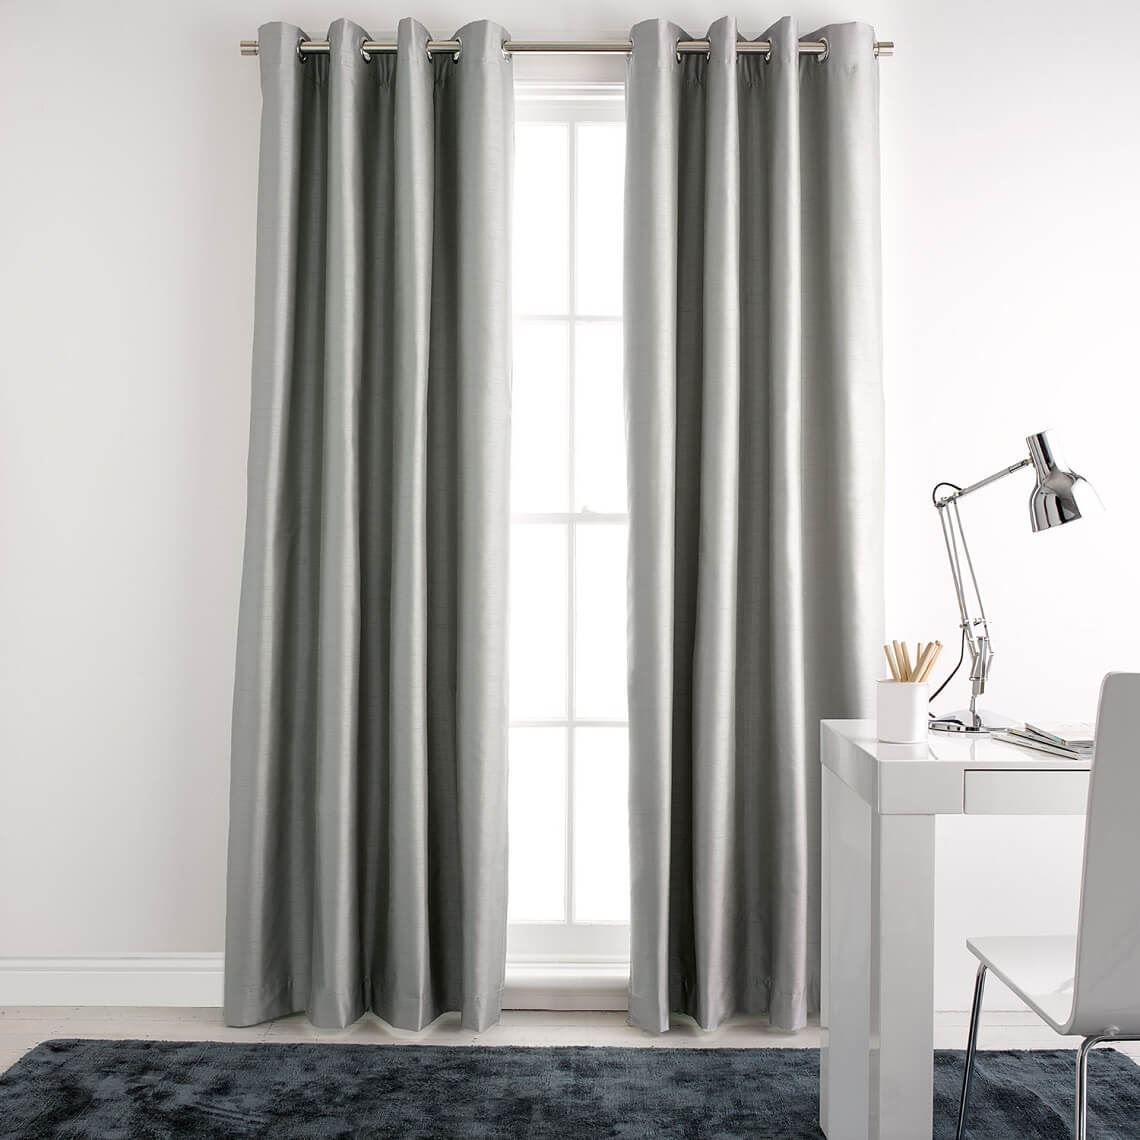 Aberdeen Blockout Eyelet Curtain Size W 140cm x D 1cm x H 230cm in Silver 100% Polyester/Acrylic Flock Coating/Stainless Steel Freedom by Freedom, a Curtains for sale on Style Sourcebook